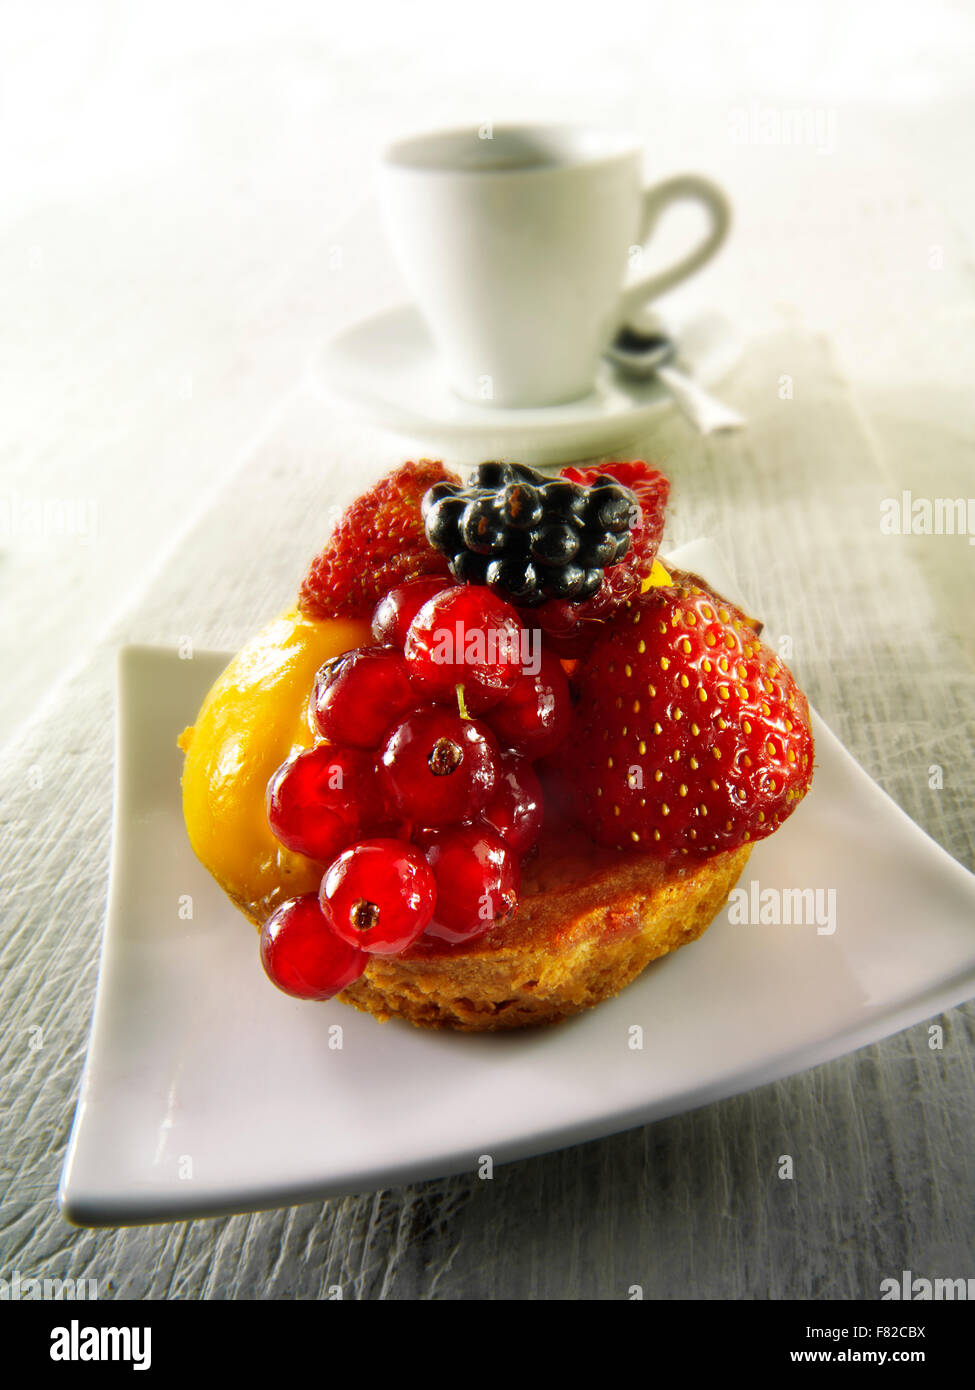 Artisan Patissier fruit cake with redcurrants, wild strawberries, blackberry and creme patisserie in a light sponge - Stock Image